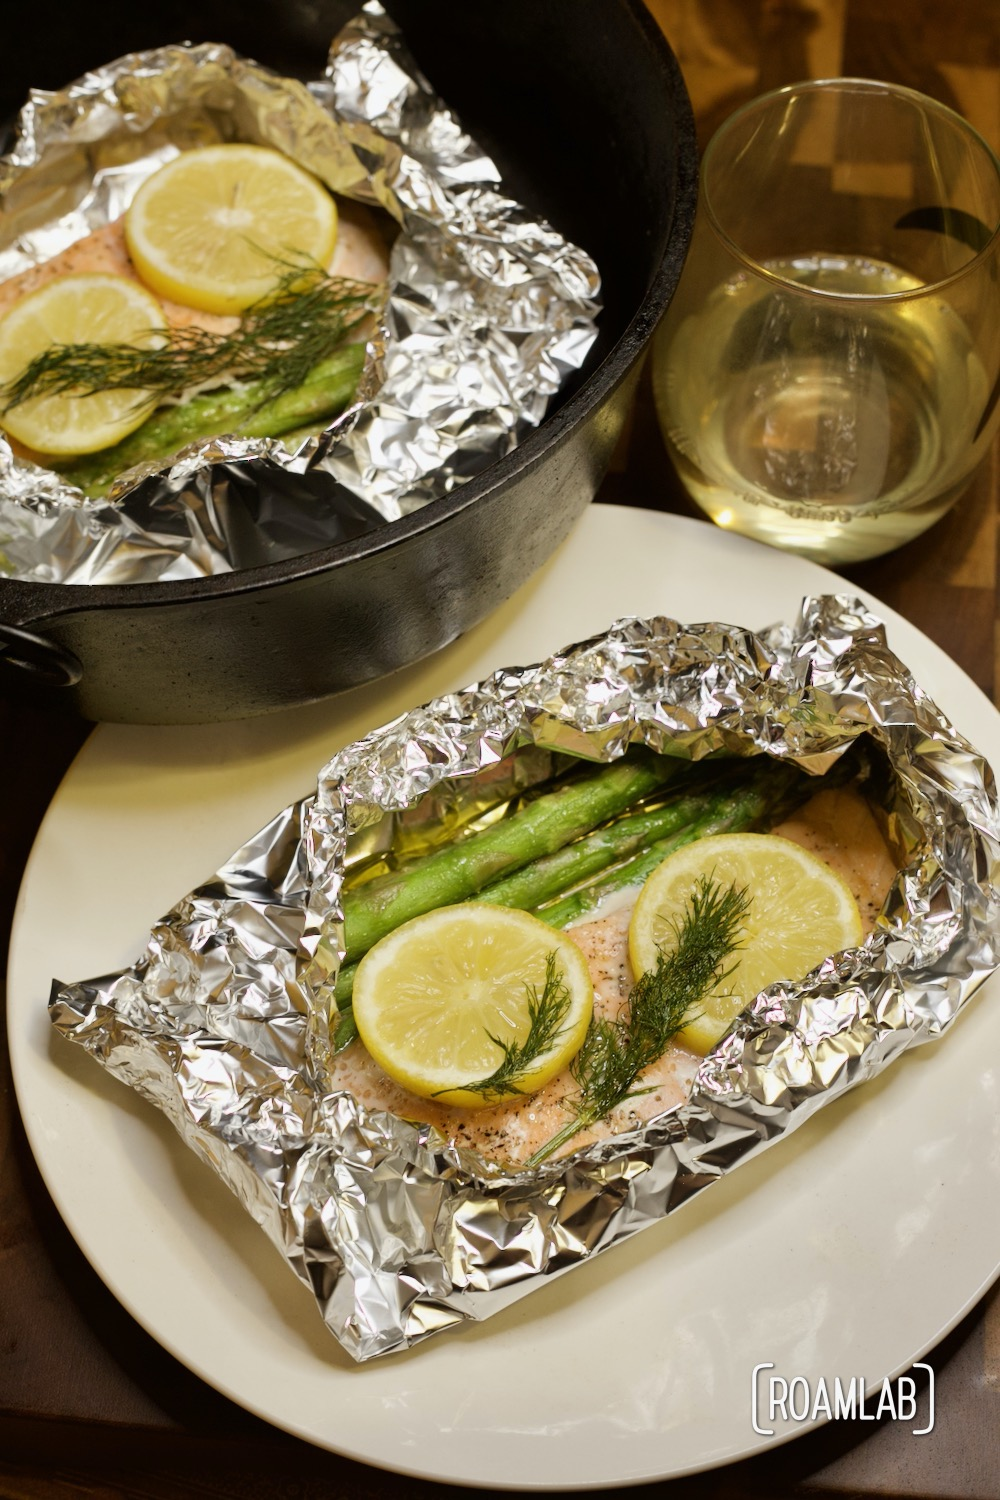 Enjoy this simple seafood course with our tin foil salmon campfire cooking dinner recipe. Add veggies with the fillet to make a full meal in one packet.